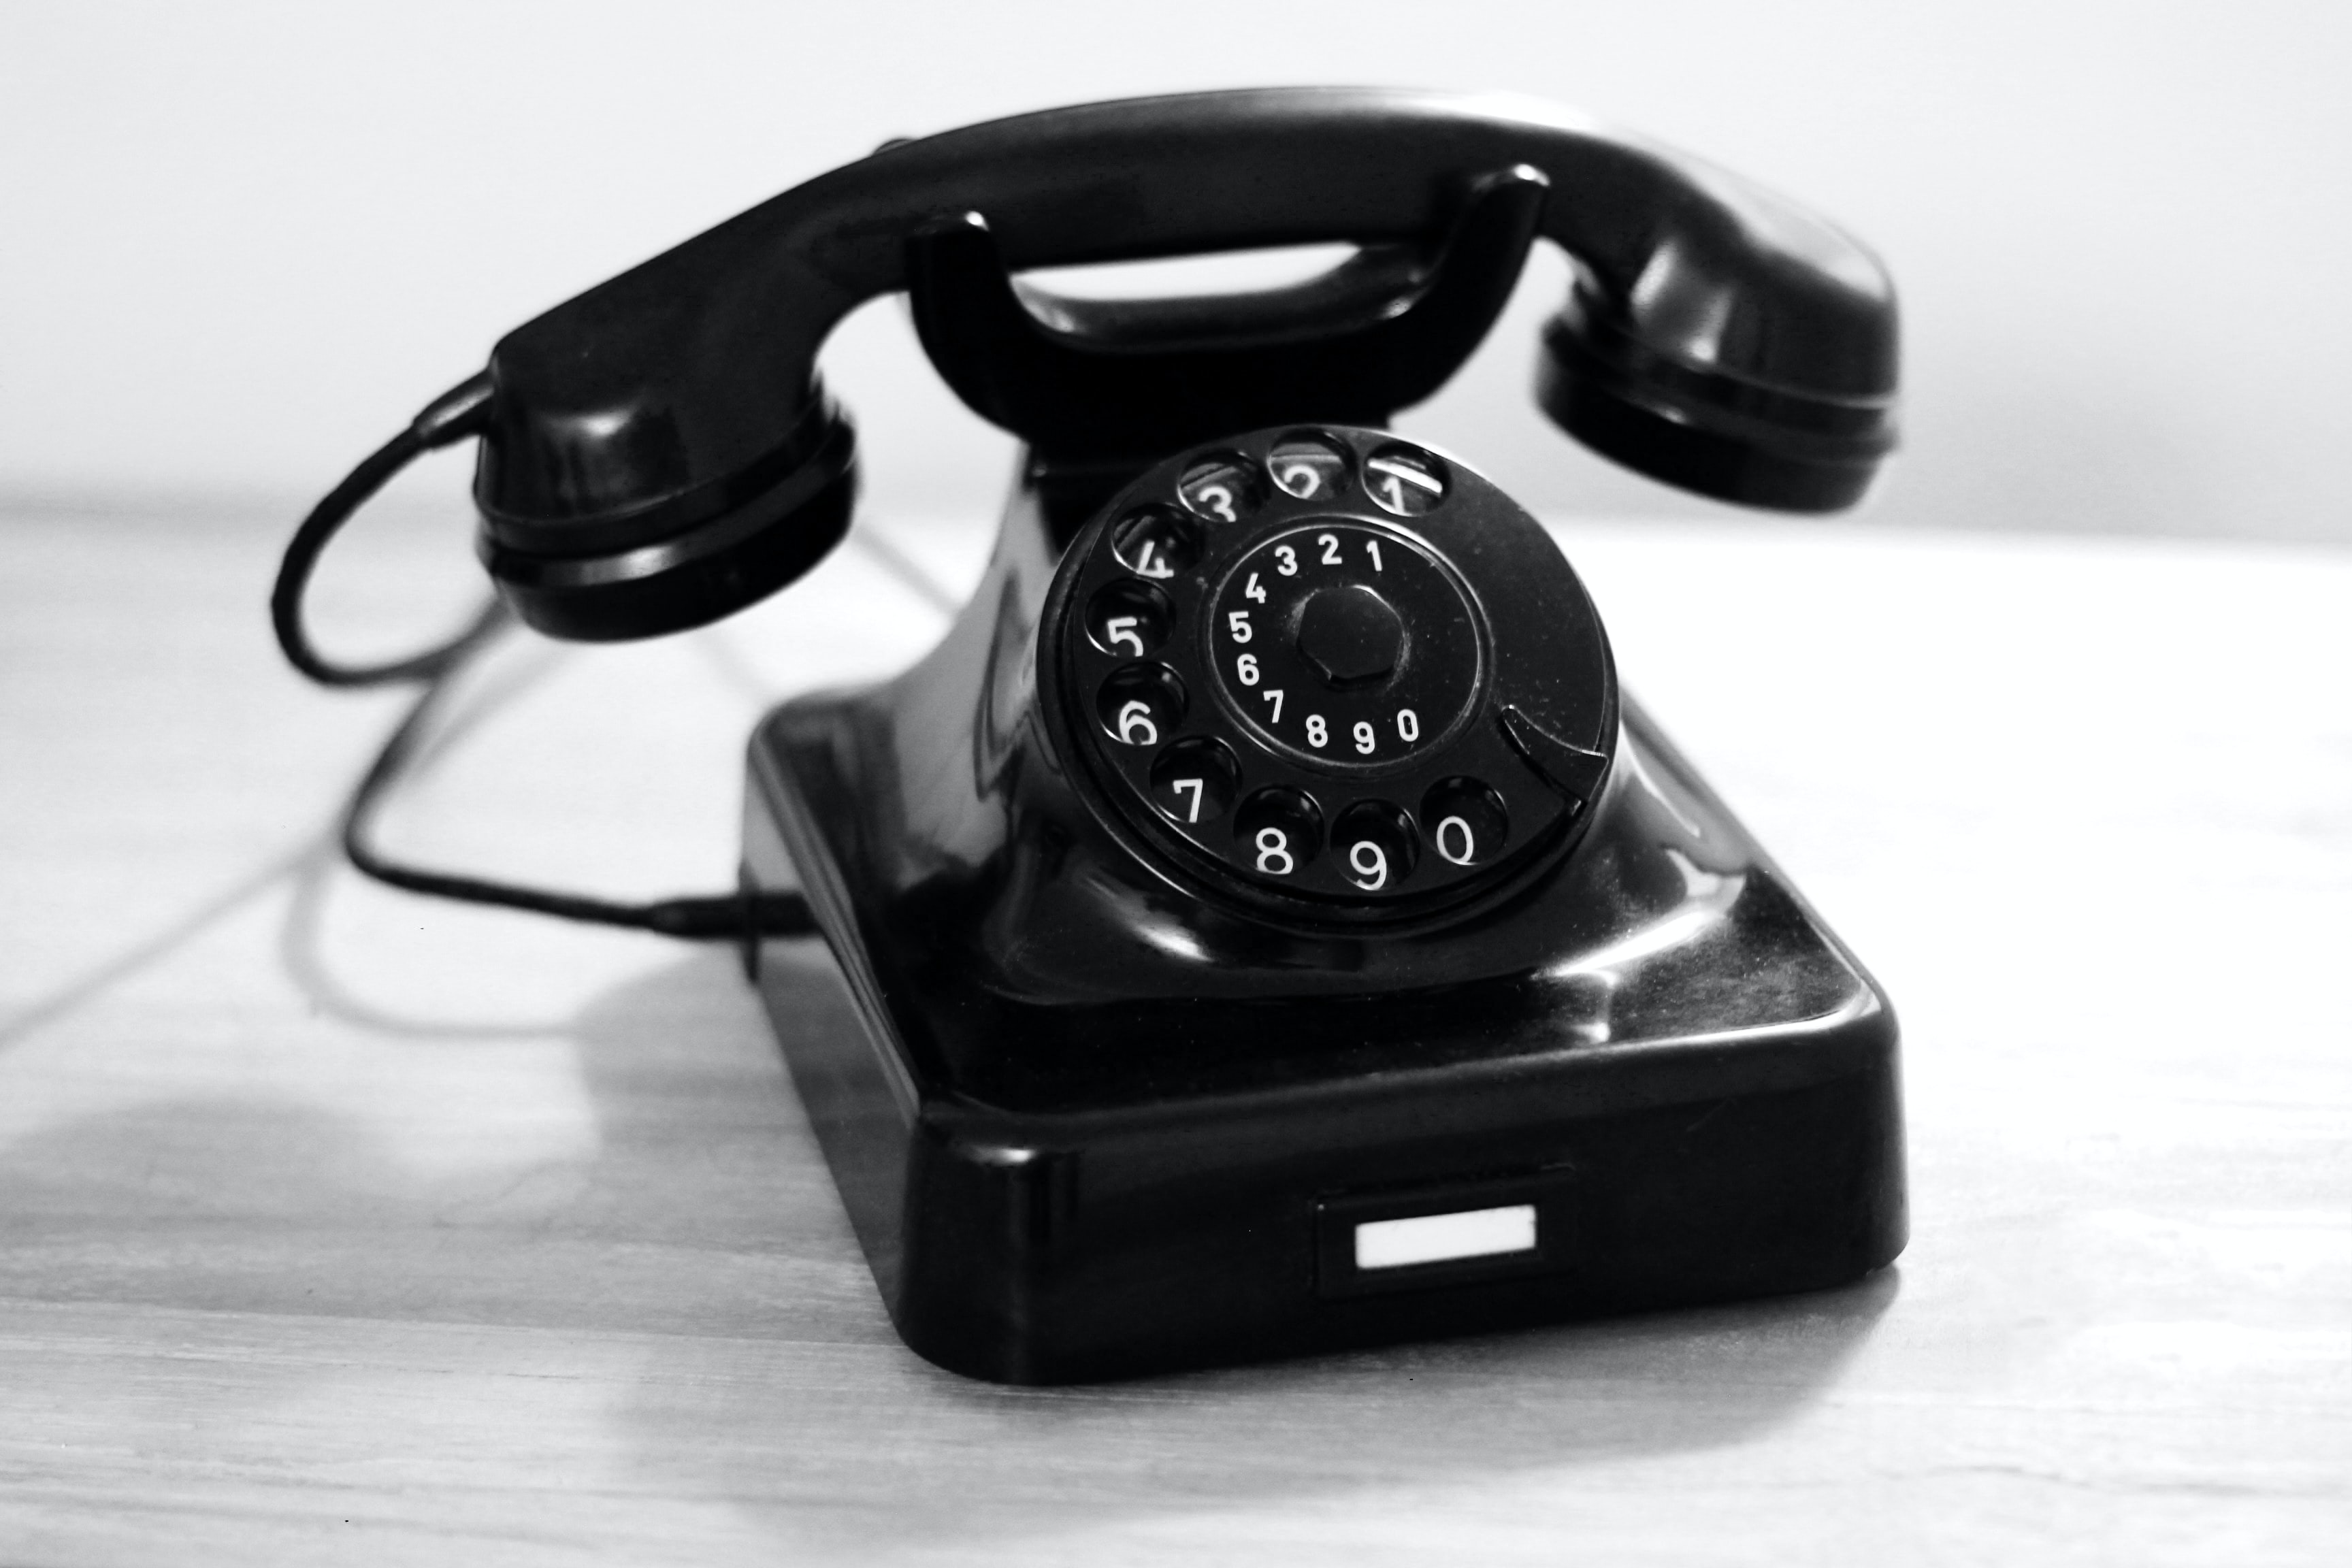 Dealing With Difficult Callers Summary